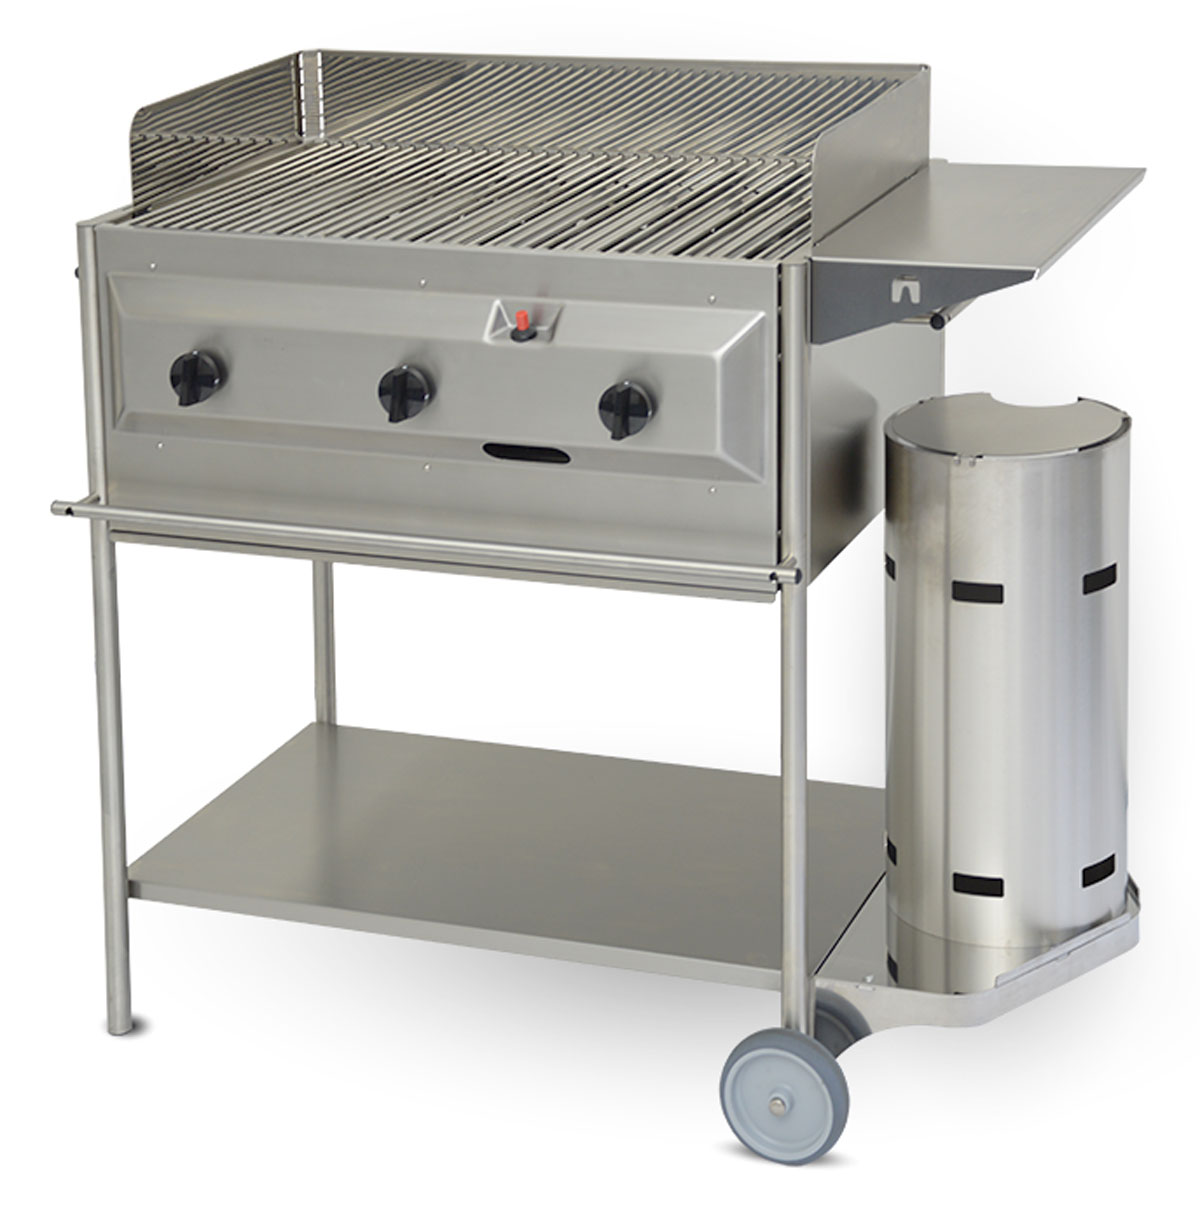 schickling grill - grills made in germany | bbqpit.de